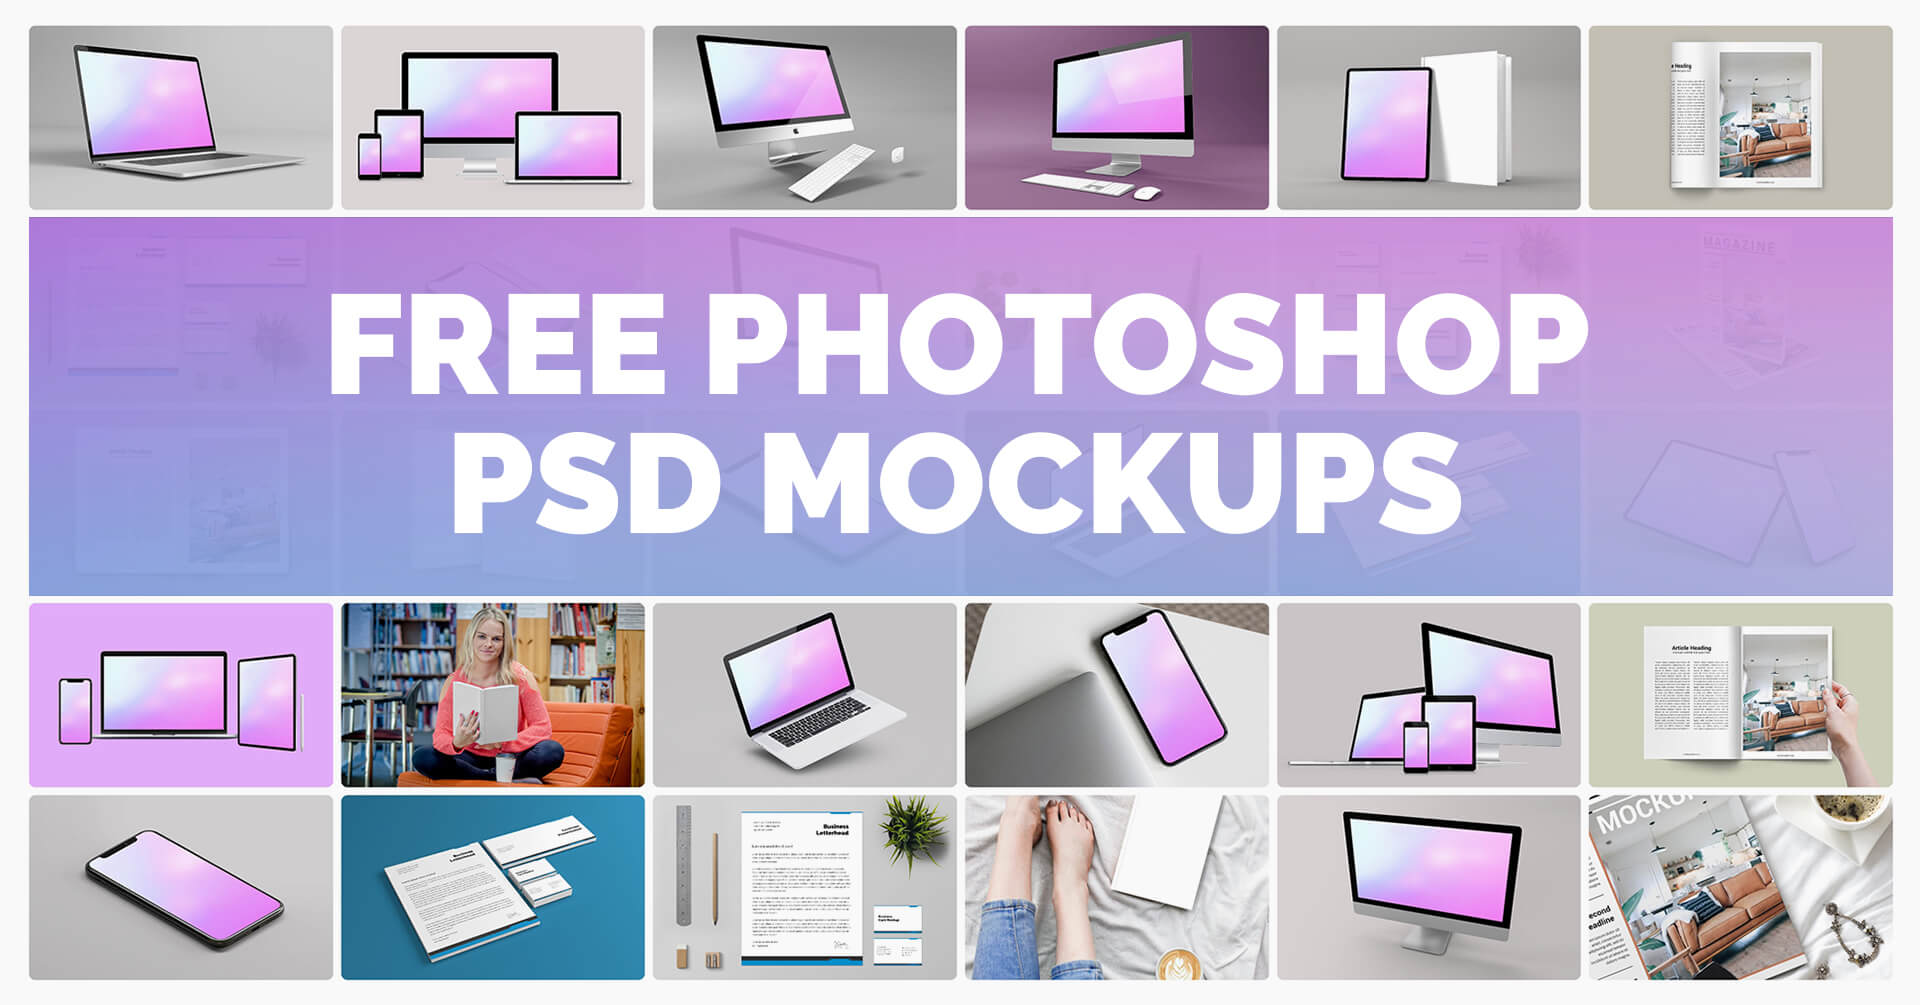 Free psd mockups for photoshop